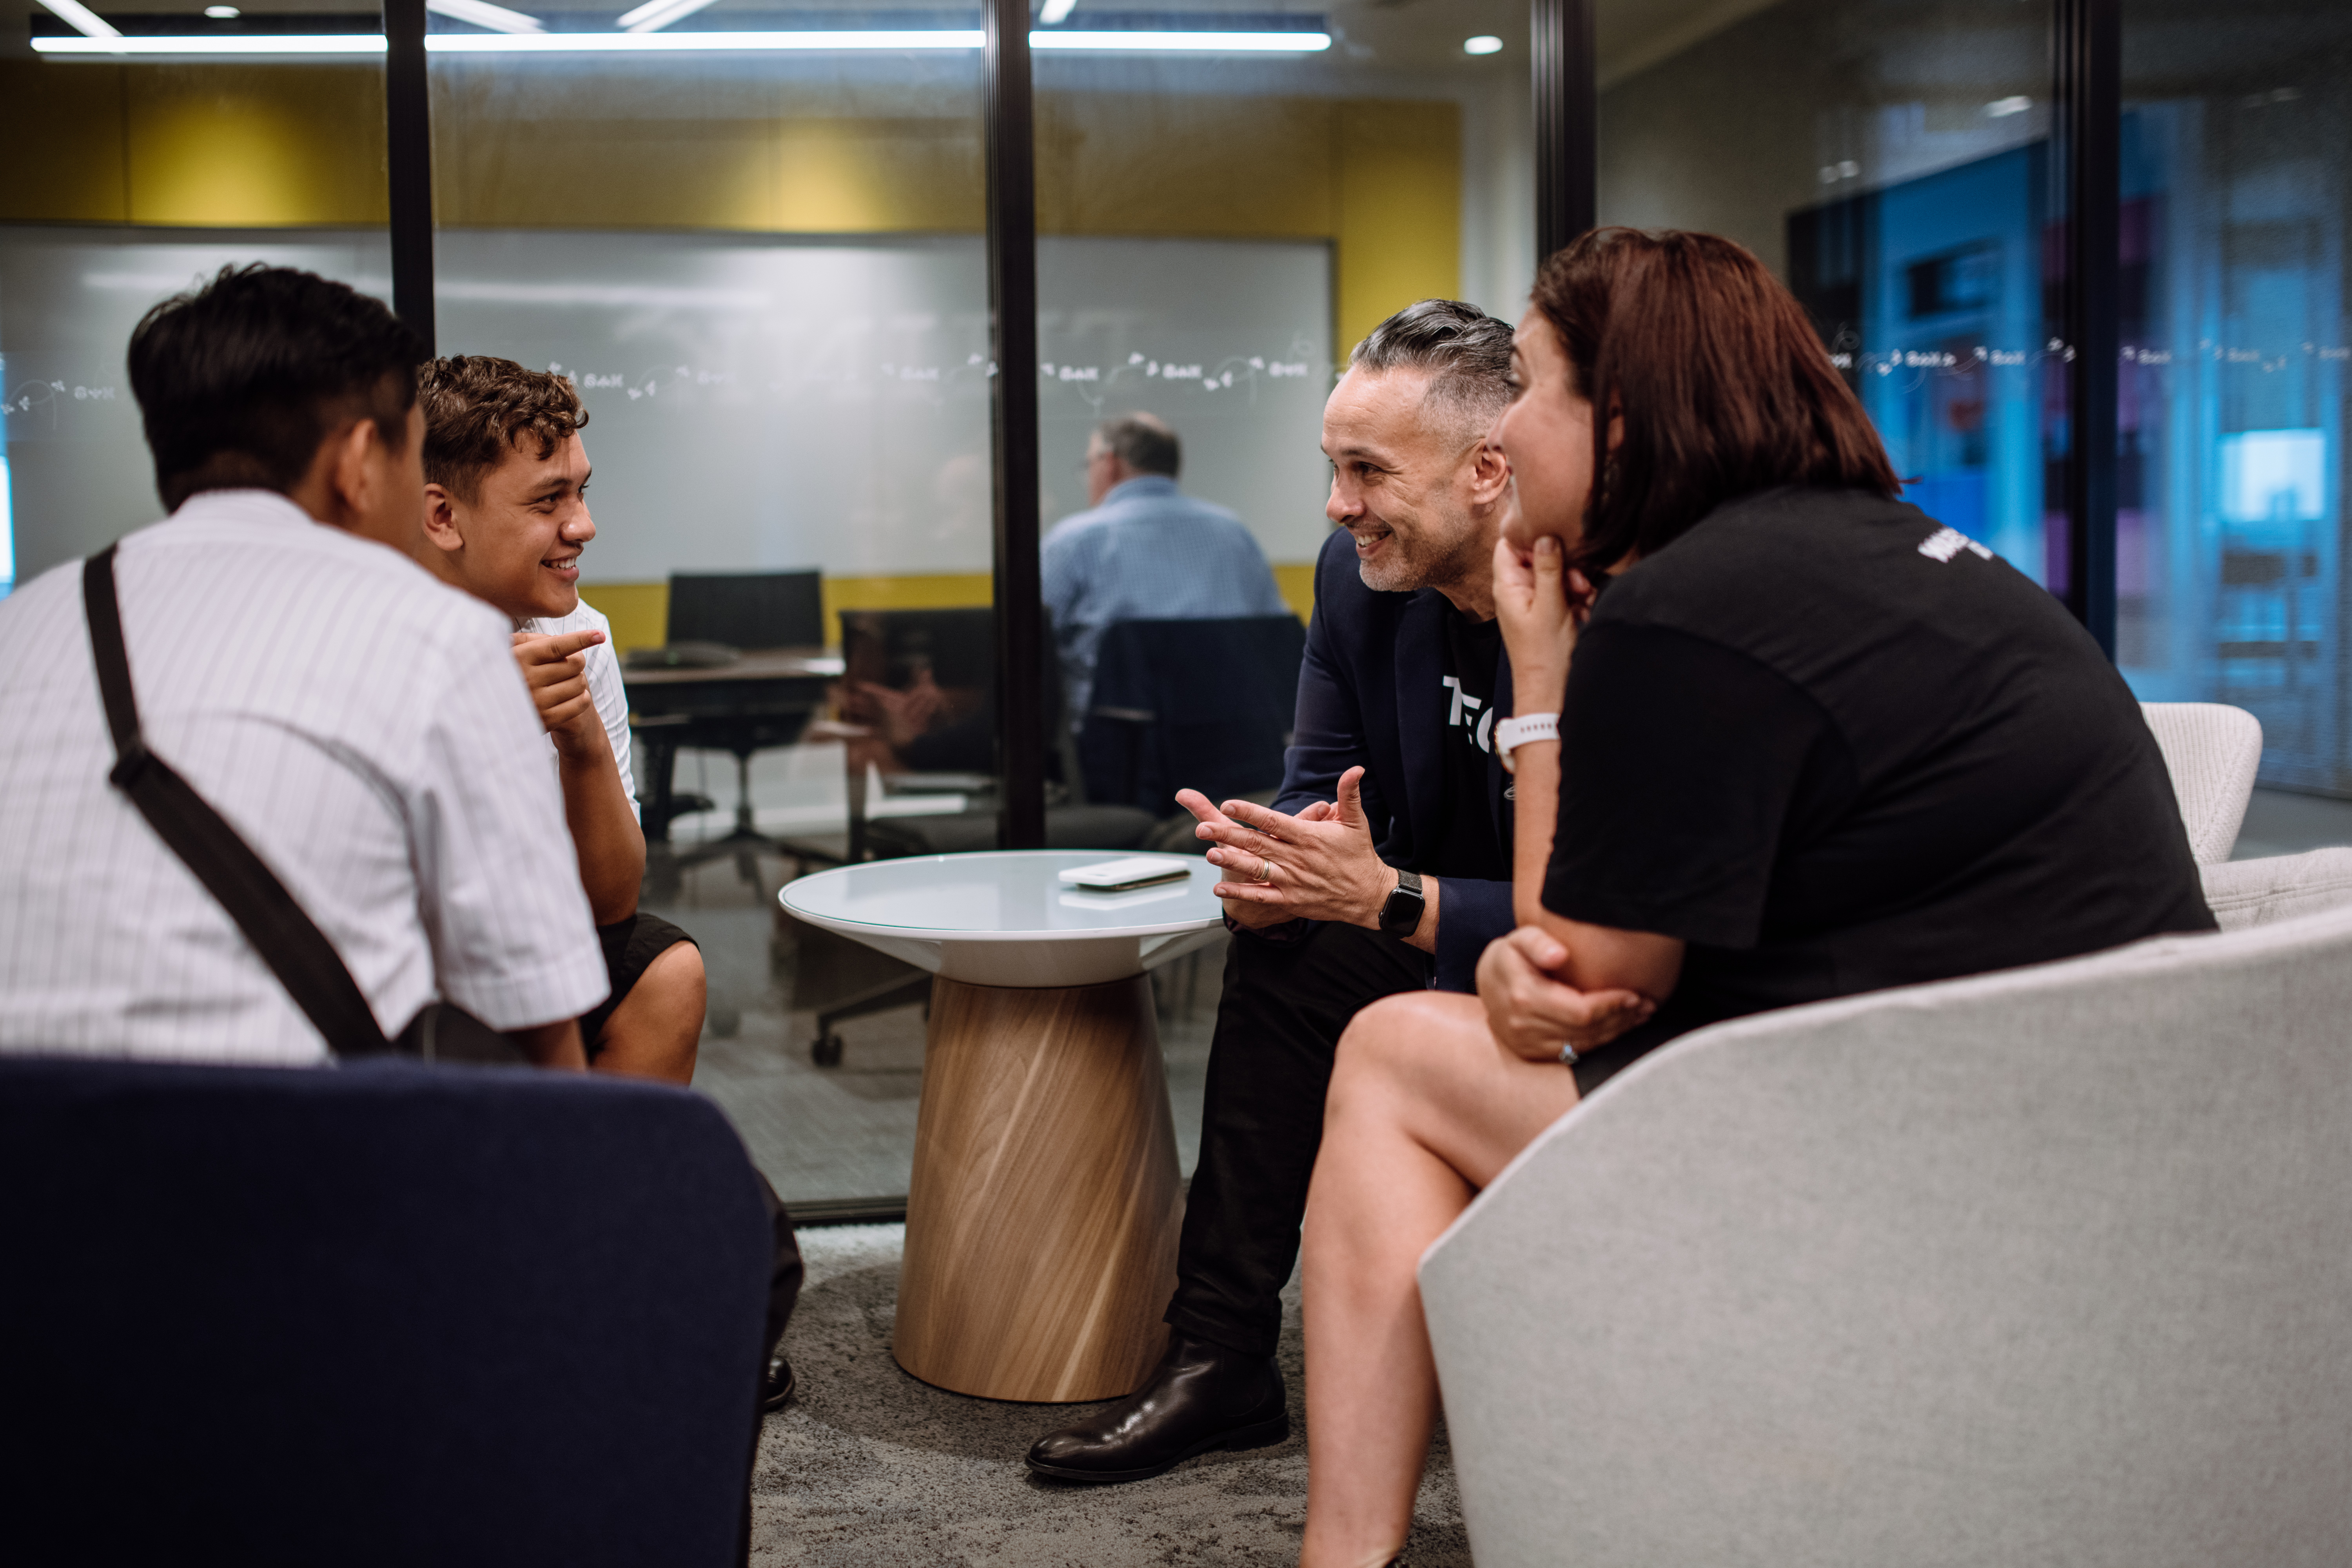 Pre-Lockdown, P-TECH Mentoring on Orientation Day, February 2020, IBM Auckland